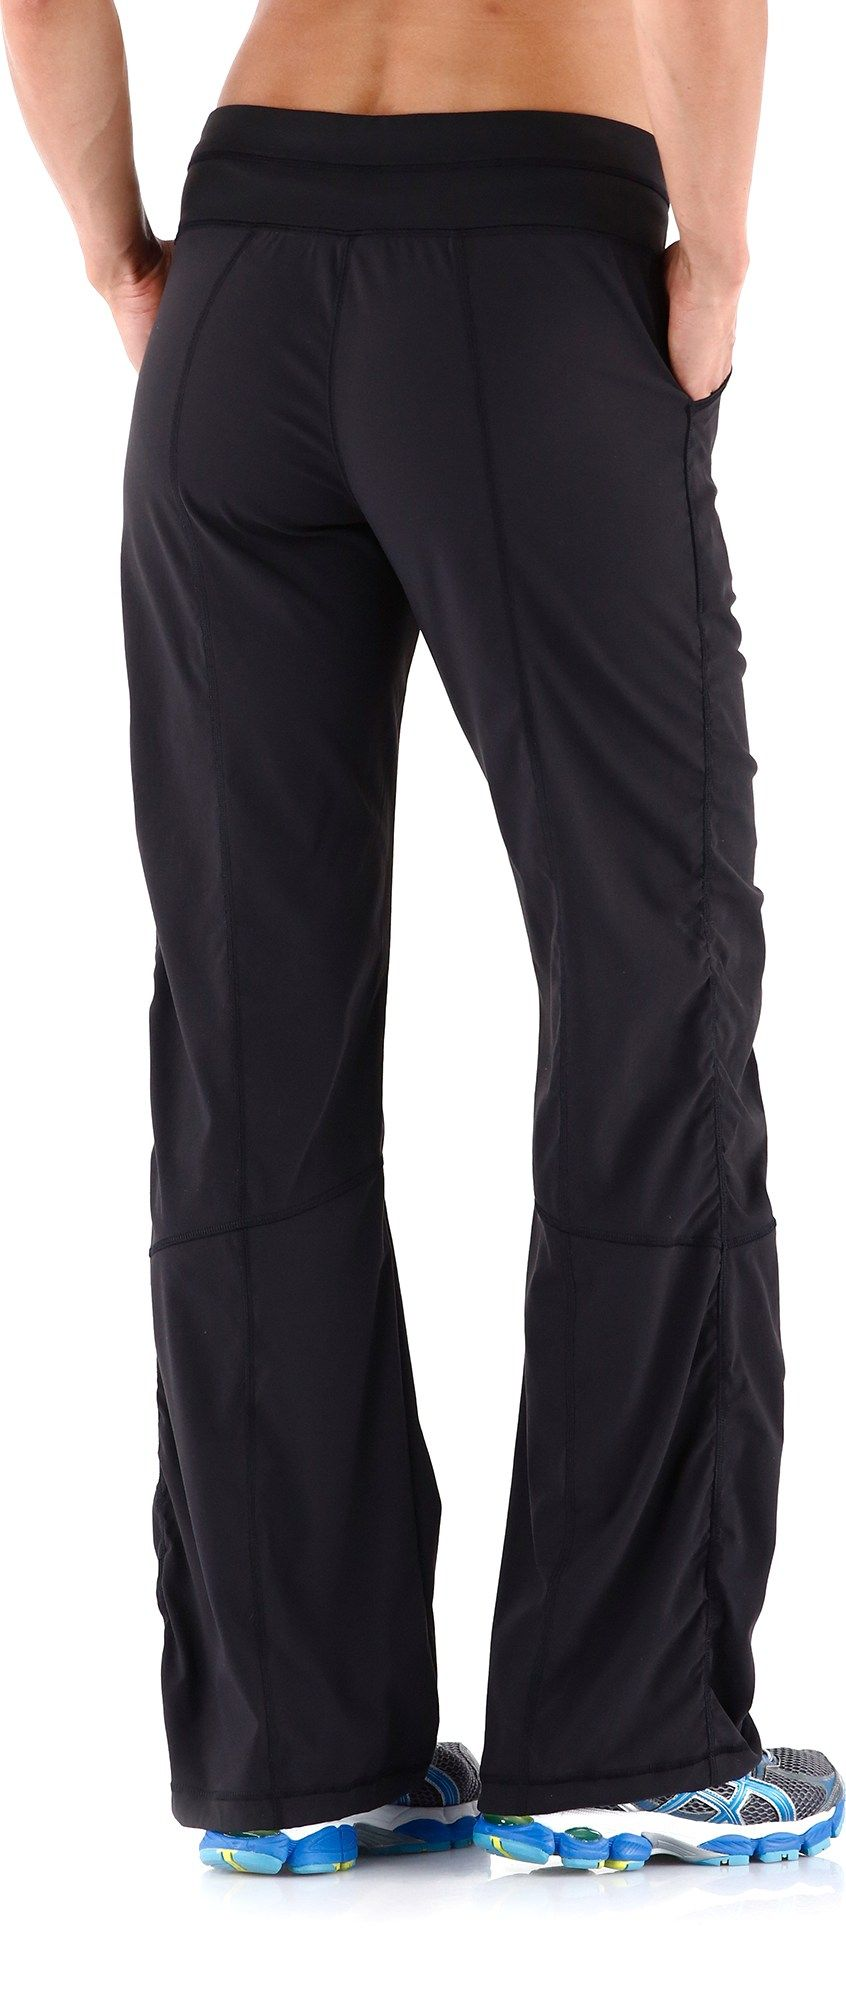 be0df70ff134 lucy Get Going Pants for your workout. Hiking Outfit For Women